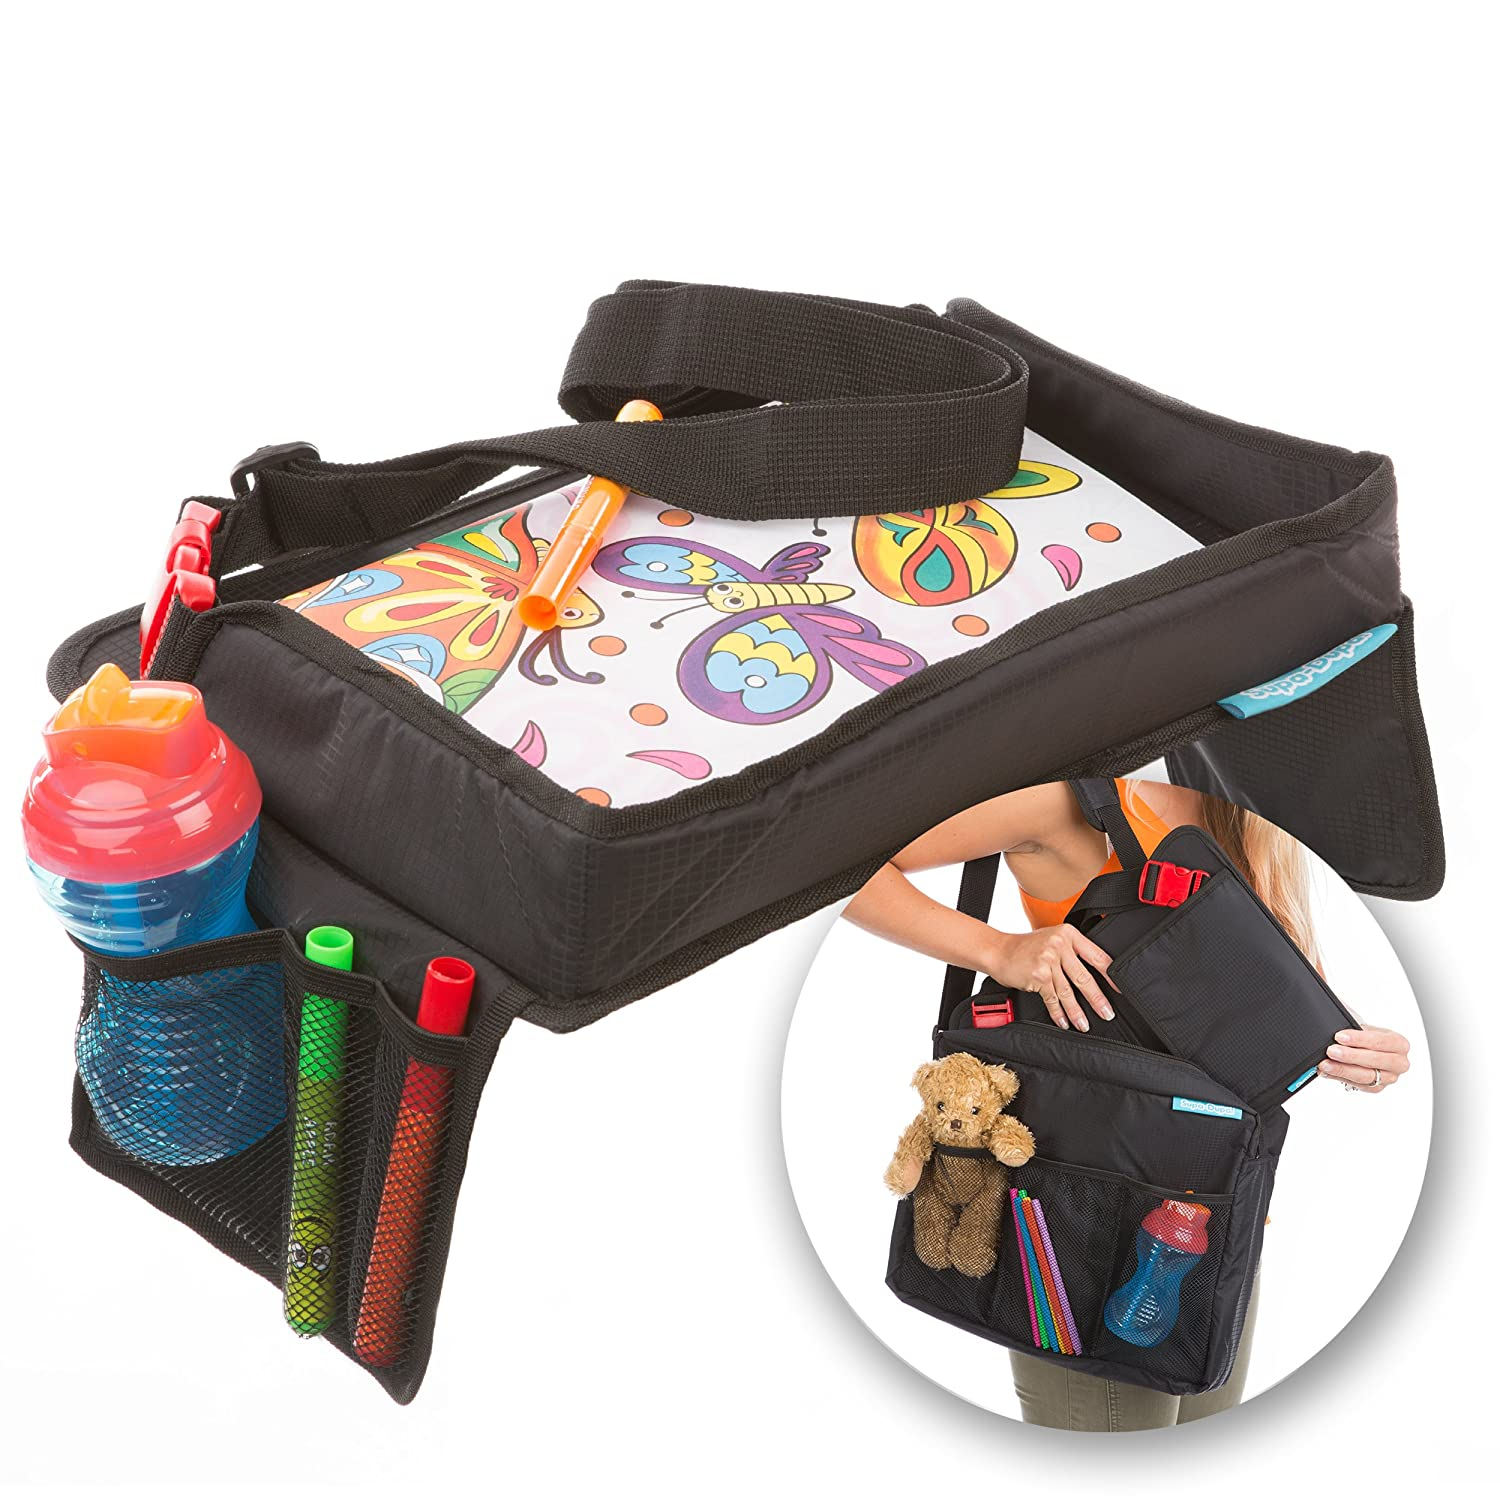 Children's Snack N Play Car Seat Travel Tray & Carry Bag Set by Supa-Dupa! Kids Travel Play Tray Suitable for most kids & toddler carseats + (BONUS Carry Bag) SD-1